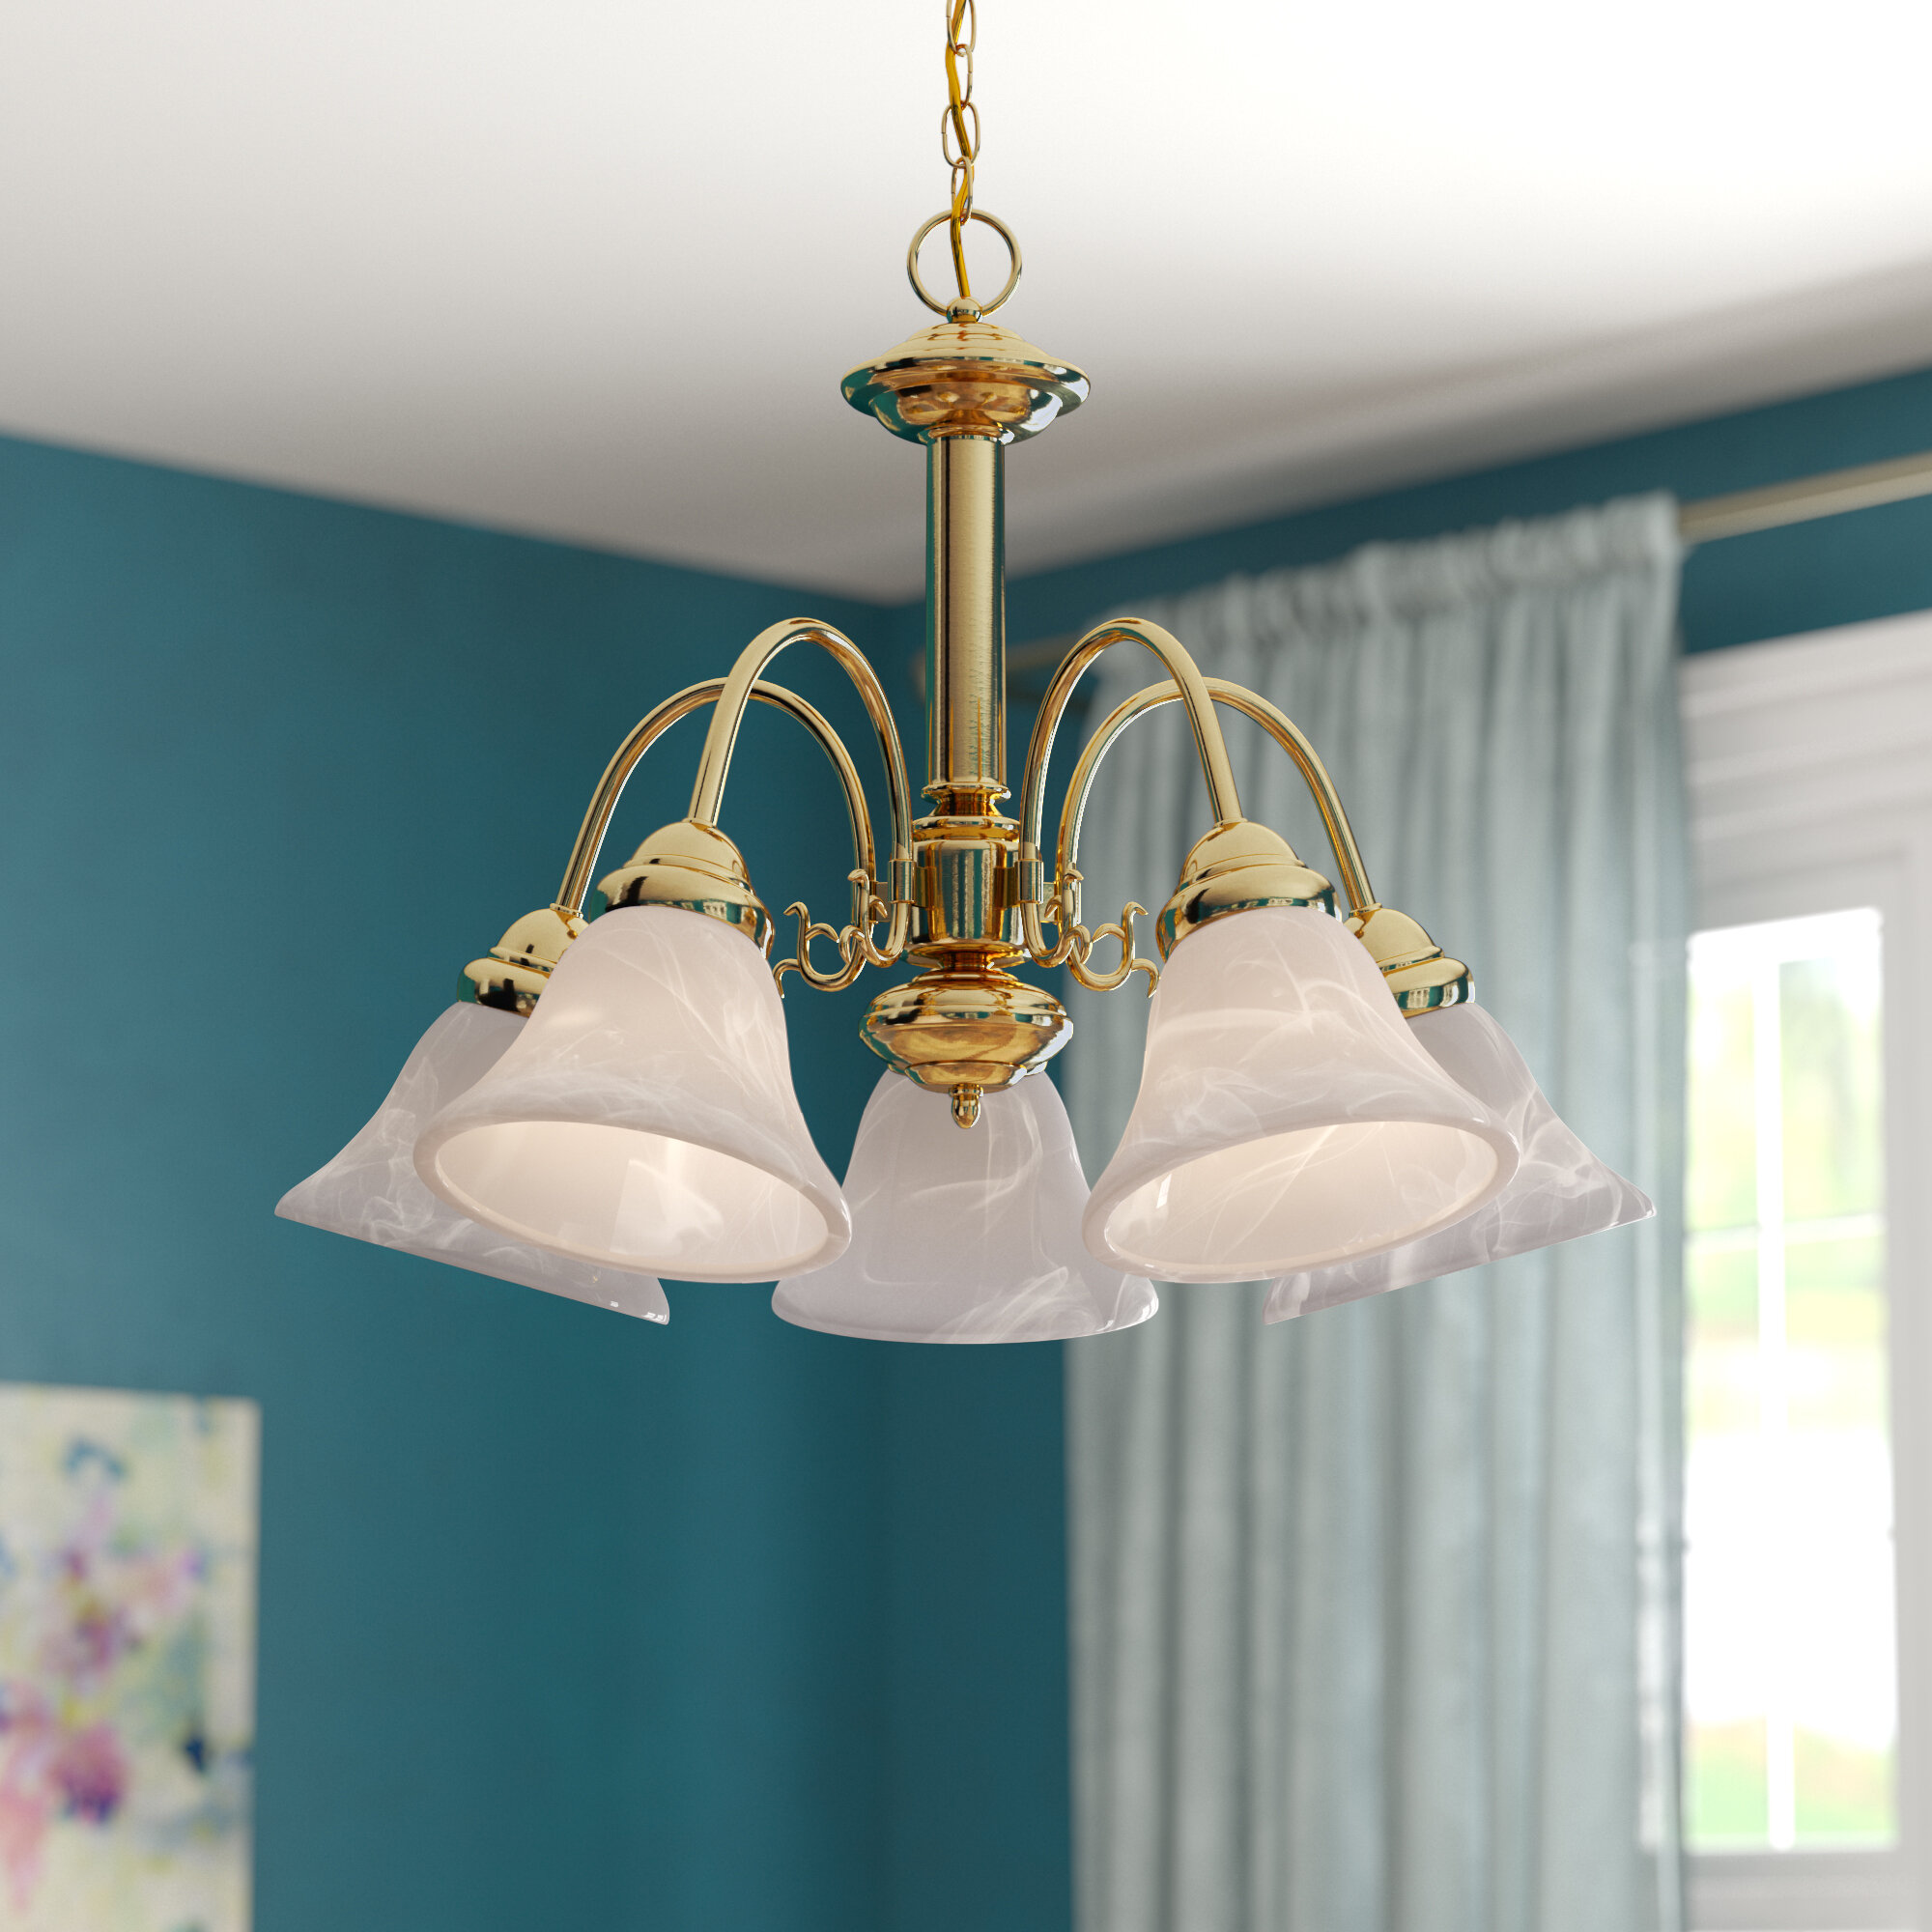 Charlton Home Turcotte 5 Light Shaded Classic Traditional Chandelier Reviews Wayfair